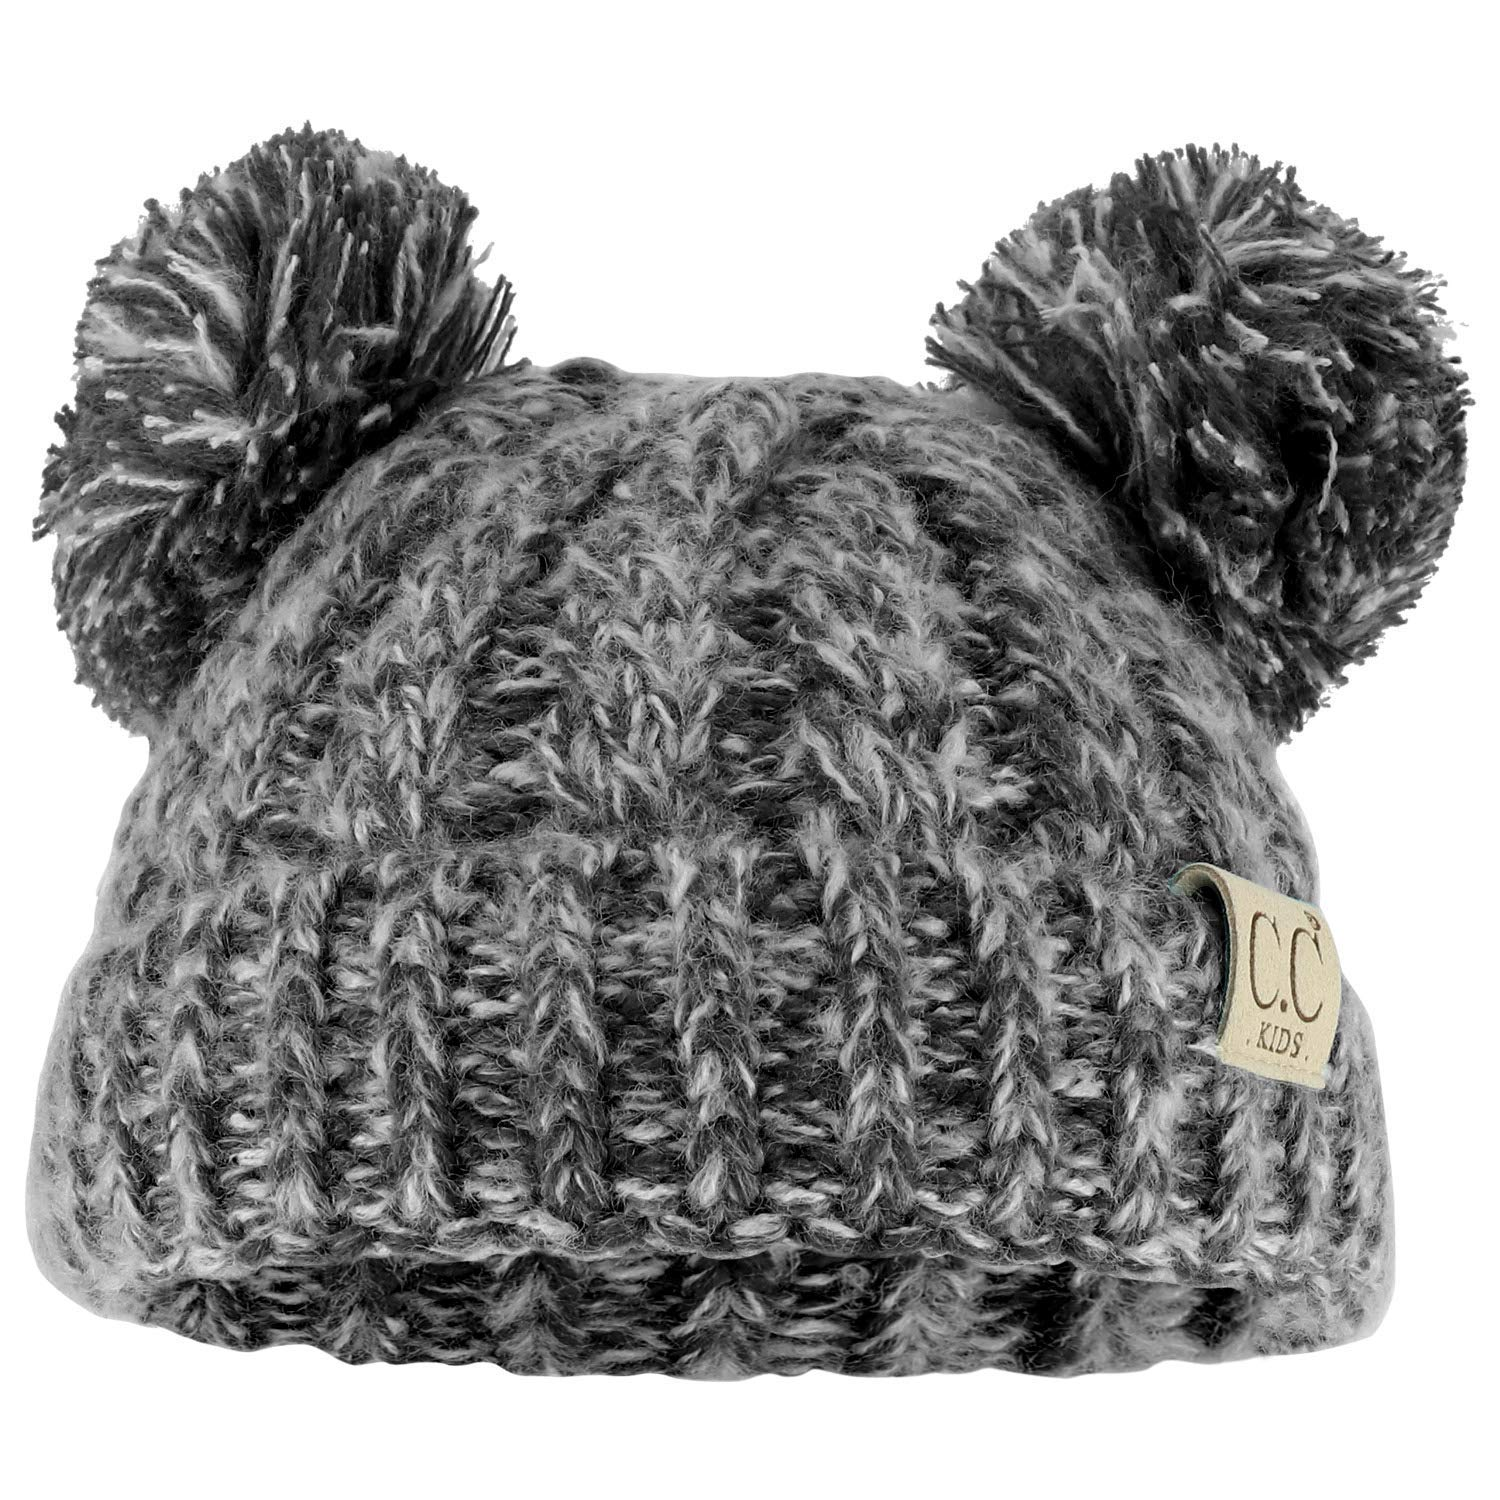 24332887f6d1f Trendy Apparel Shop Kid's Youth Size Winter Cable Knit 2 Pom Poms Beanie Hat